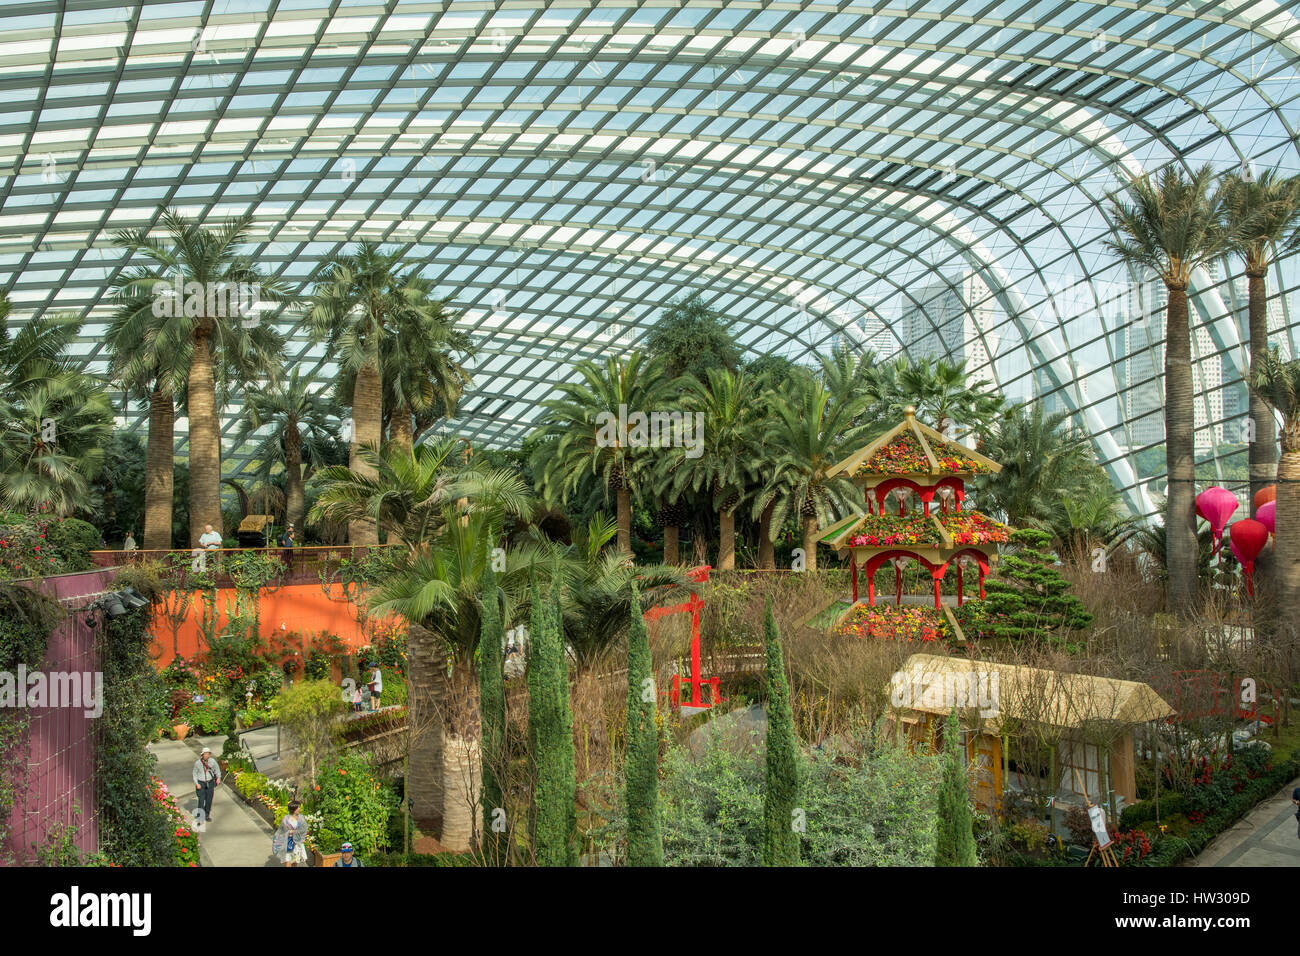 View in the Flower Dome, Gardens by the Bay, Singapore - Stock Image